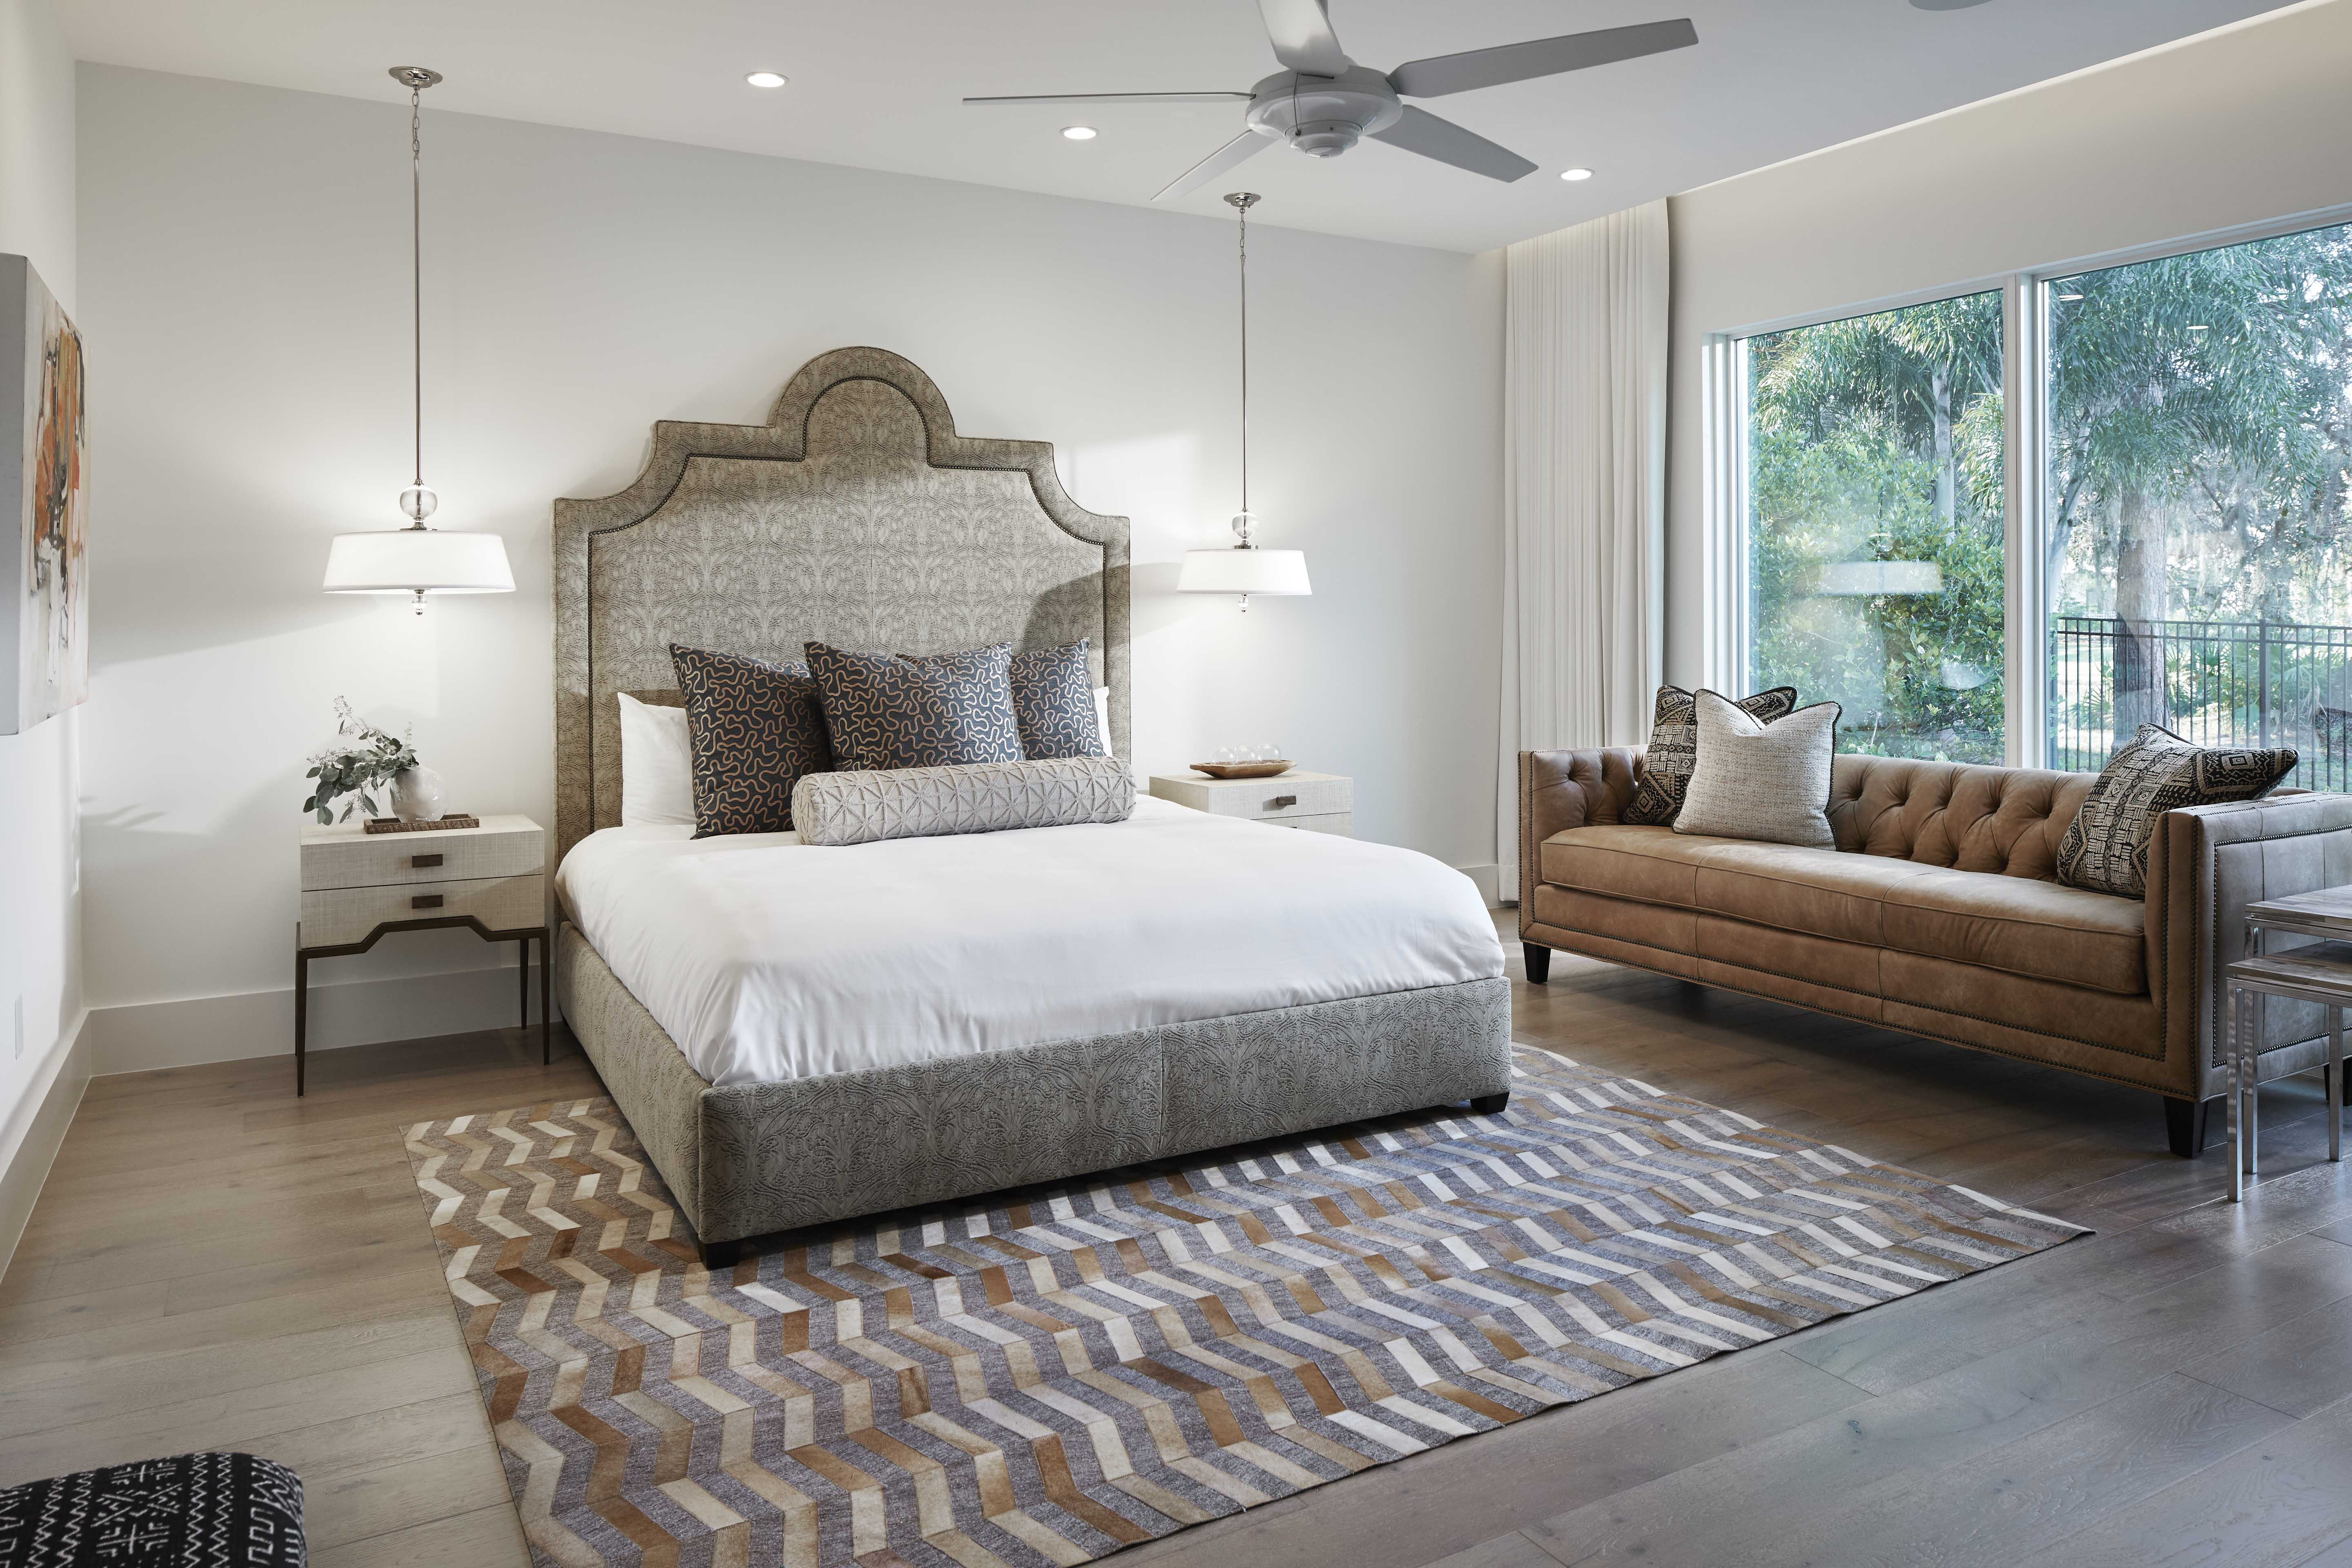 The master bedroom pumps up the warmth quotient with a wood-floor foundation, browns that lean toward the golden end of the spectrum and soft, creamy whites.